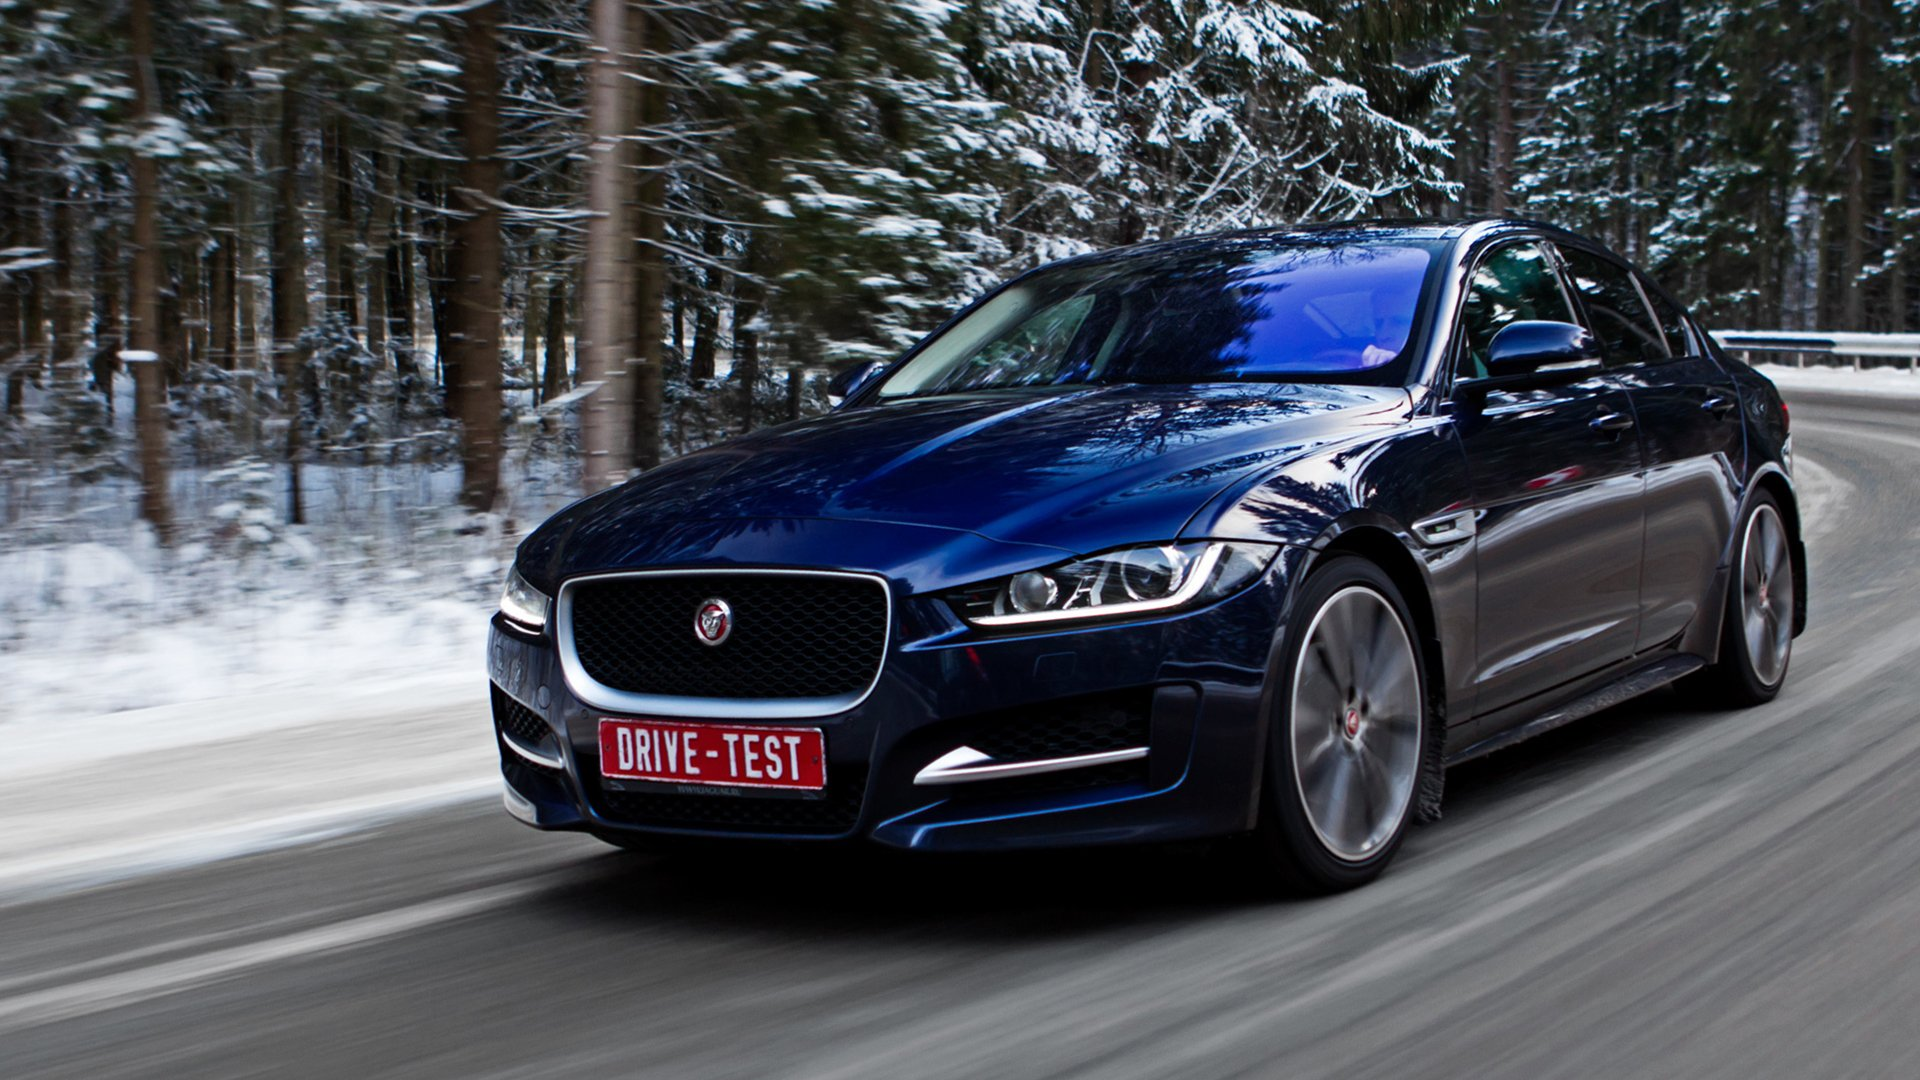 Jaguar XE 2018 Lights Wallpaper HD